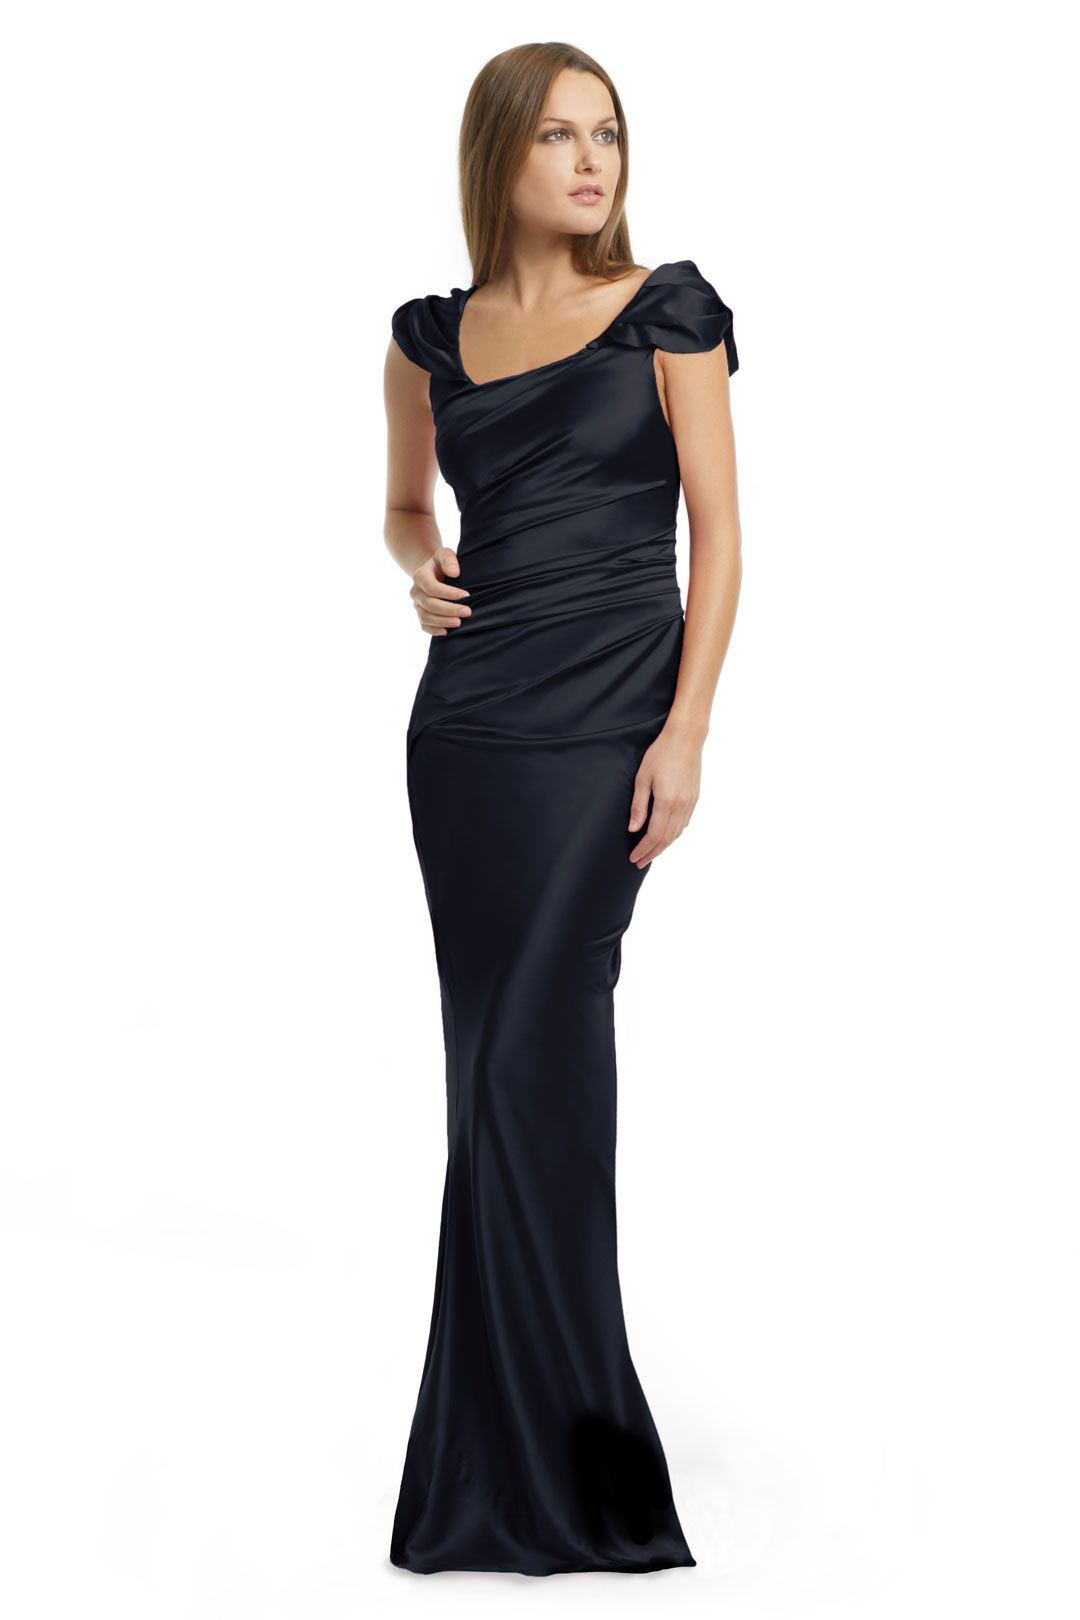 34a023b4b4 Formal Gown - Vera Wang Grand Entrance Gown